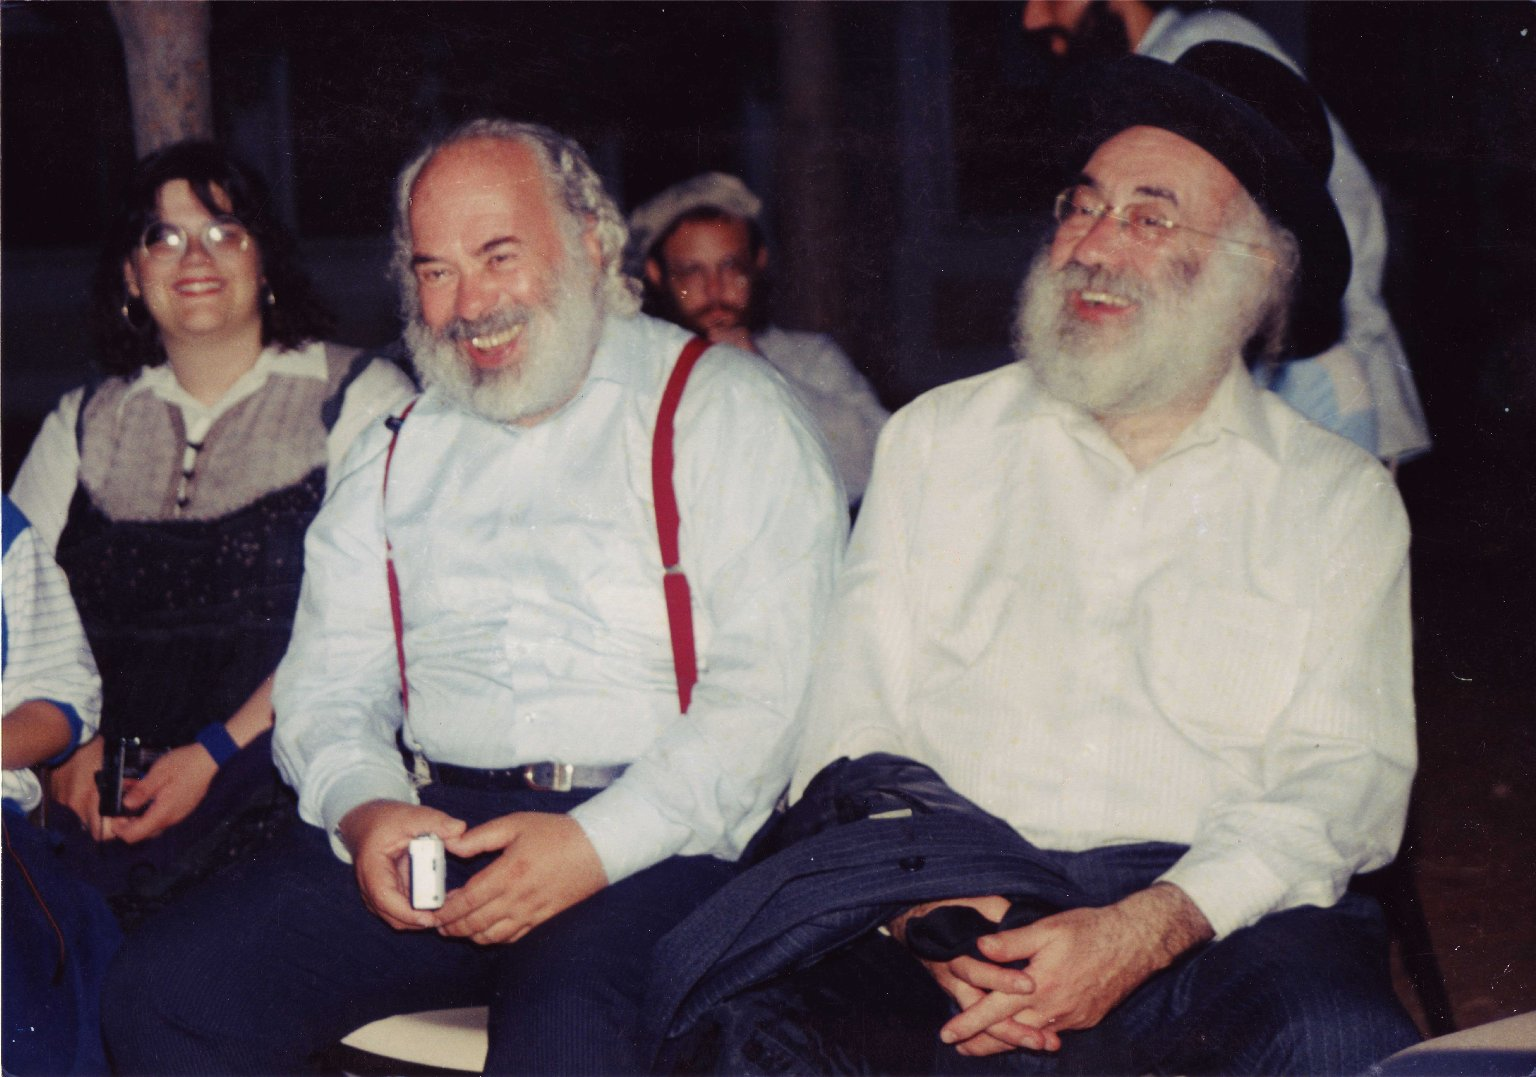 Rabbi Shlomo Carlebach (with red suspenders) and his twin brother, Rabbi Eliyah Hayyim Carlebach (in a black hat), and an unidentified woman in Israel, ca. 1985.